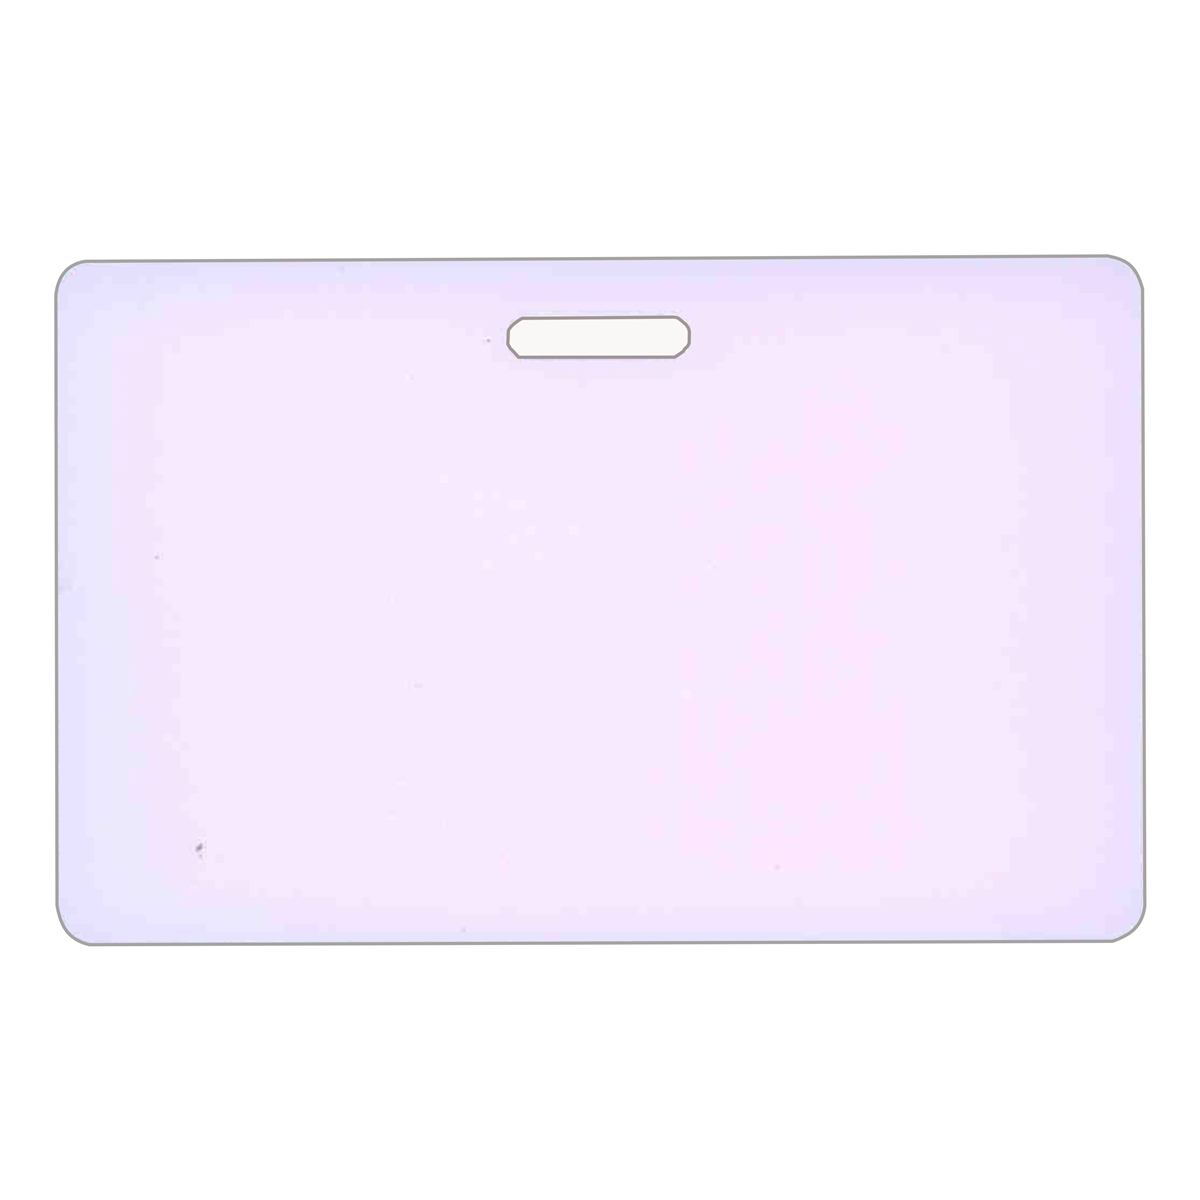 blank plastic make your own horizontal badge card - Blank Plastic Cards